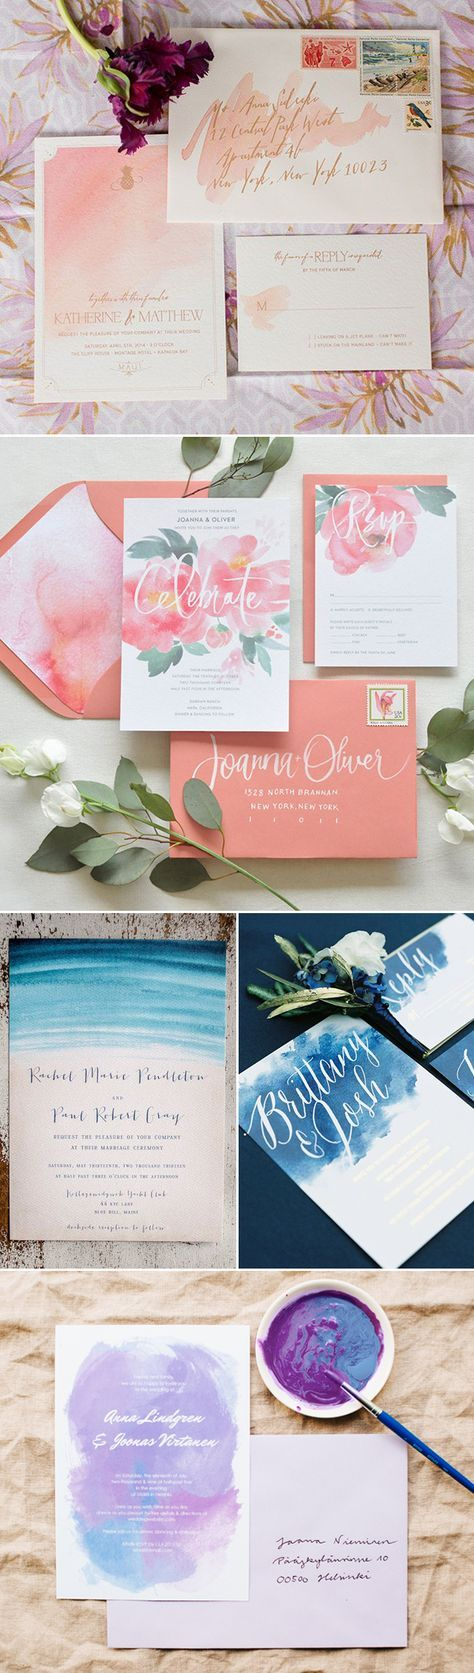 Your wedding invitation is one of the very first parts of the wedding that guests actually get to see, and it's important to show your personal style through this first impression.  Wedding invitation design is one of the most creative areas of print, and talented designers have created amazingly inspirational pieces; however, if you are …